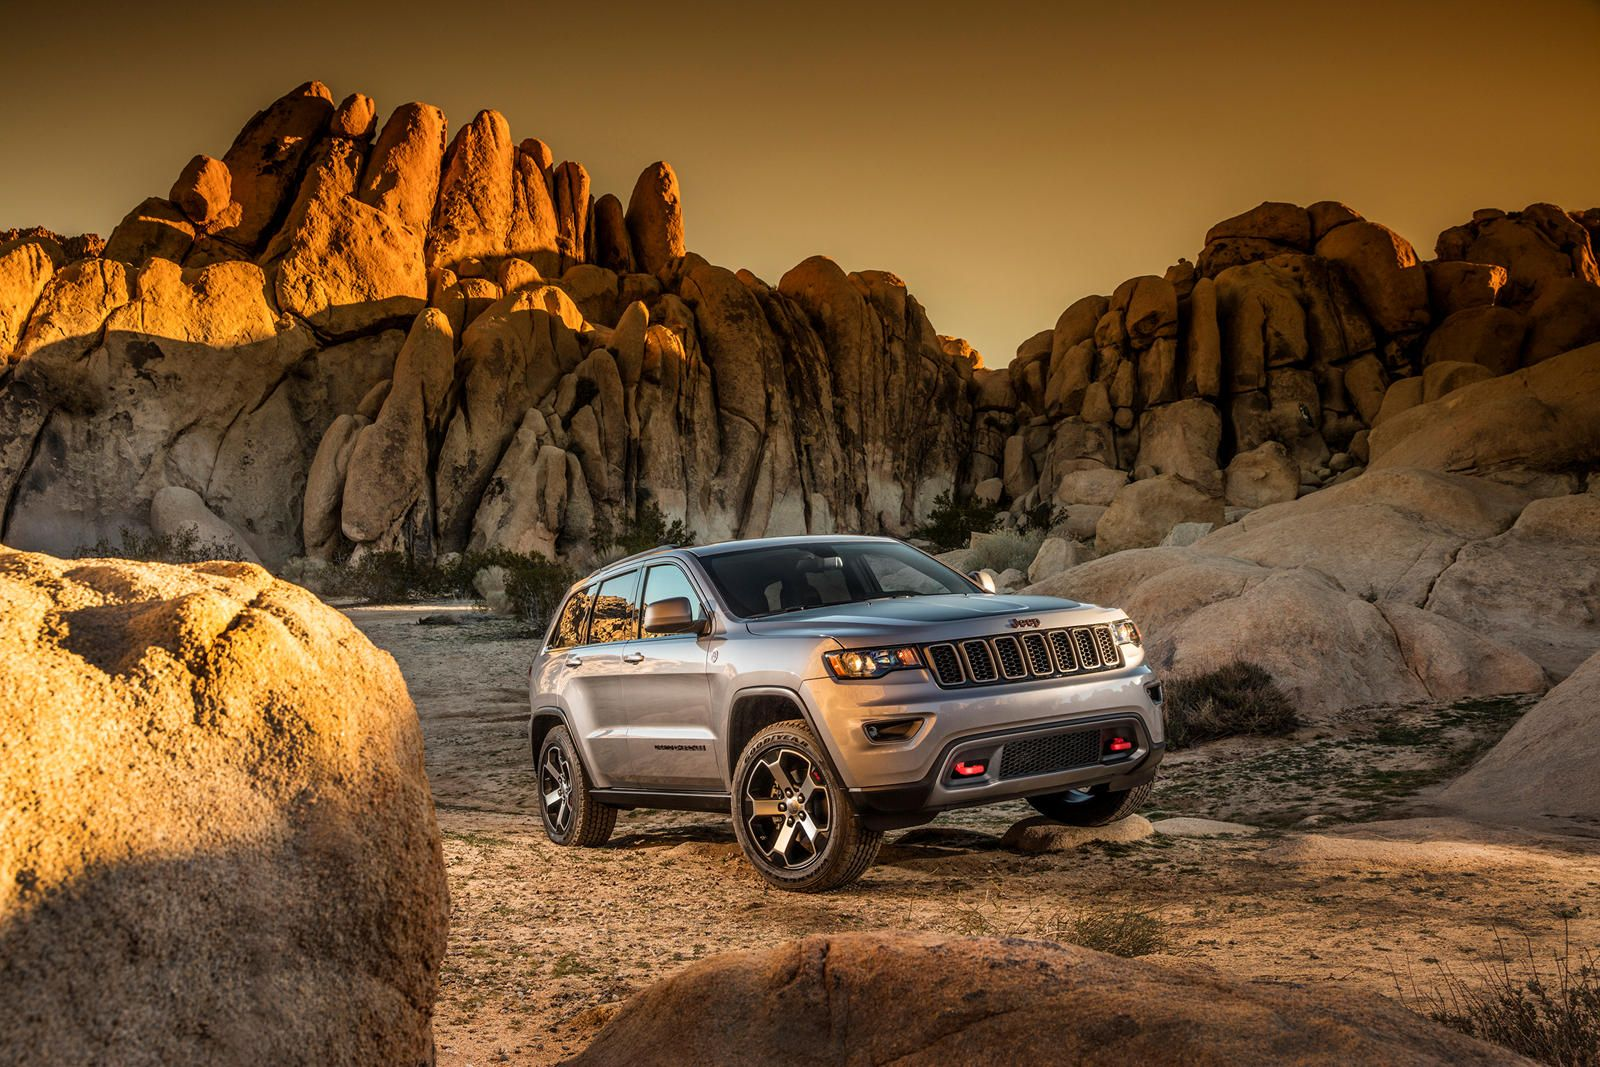 All You Need To Know About The AllNew 2021 Jeep Grand